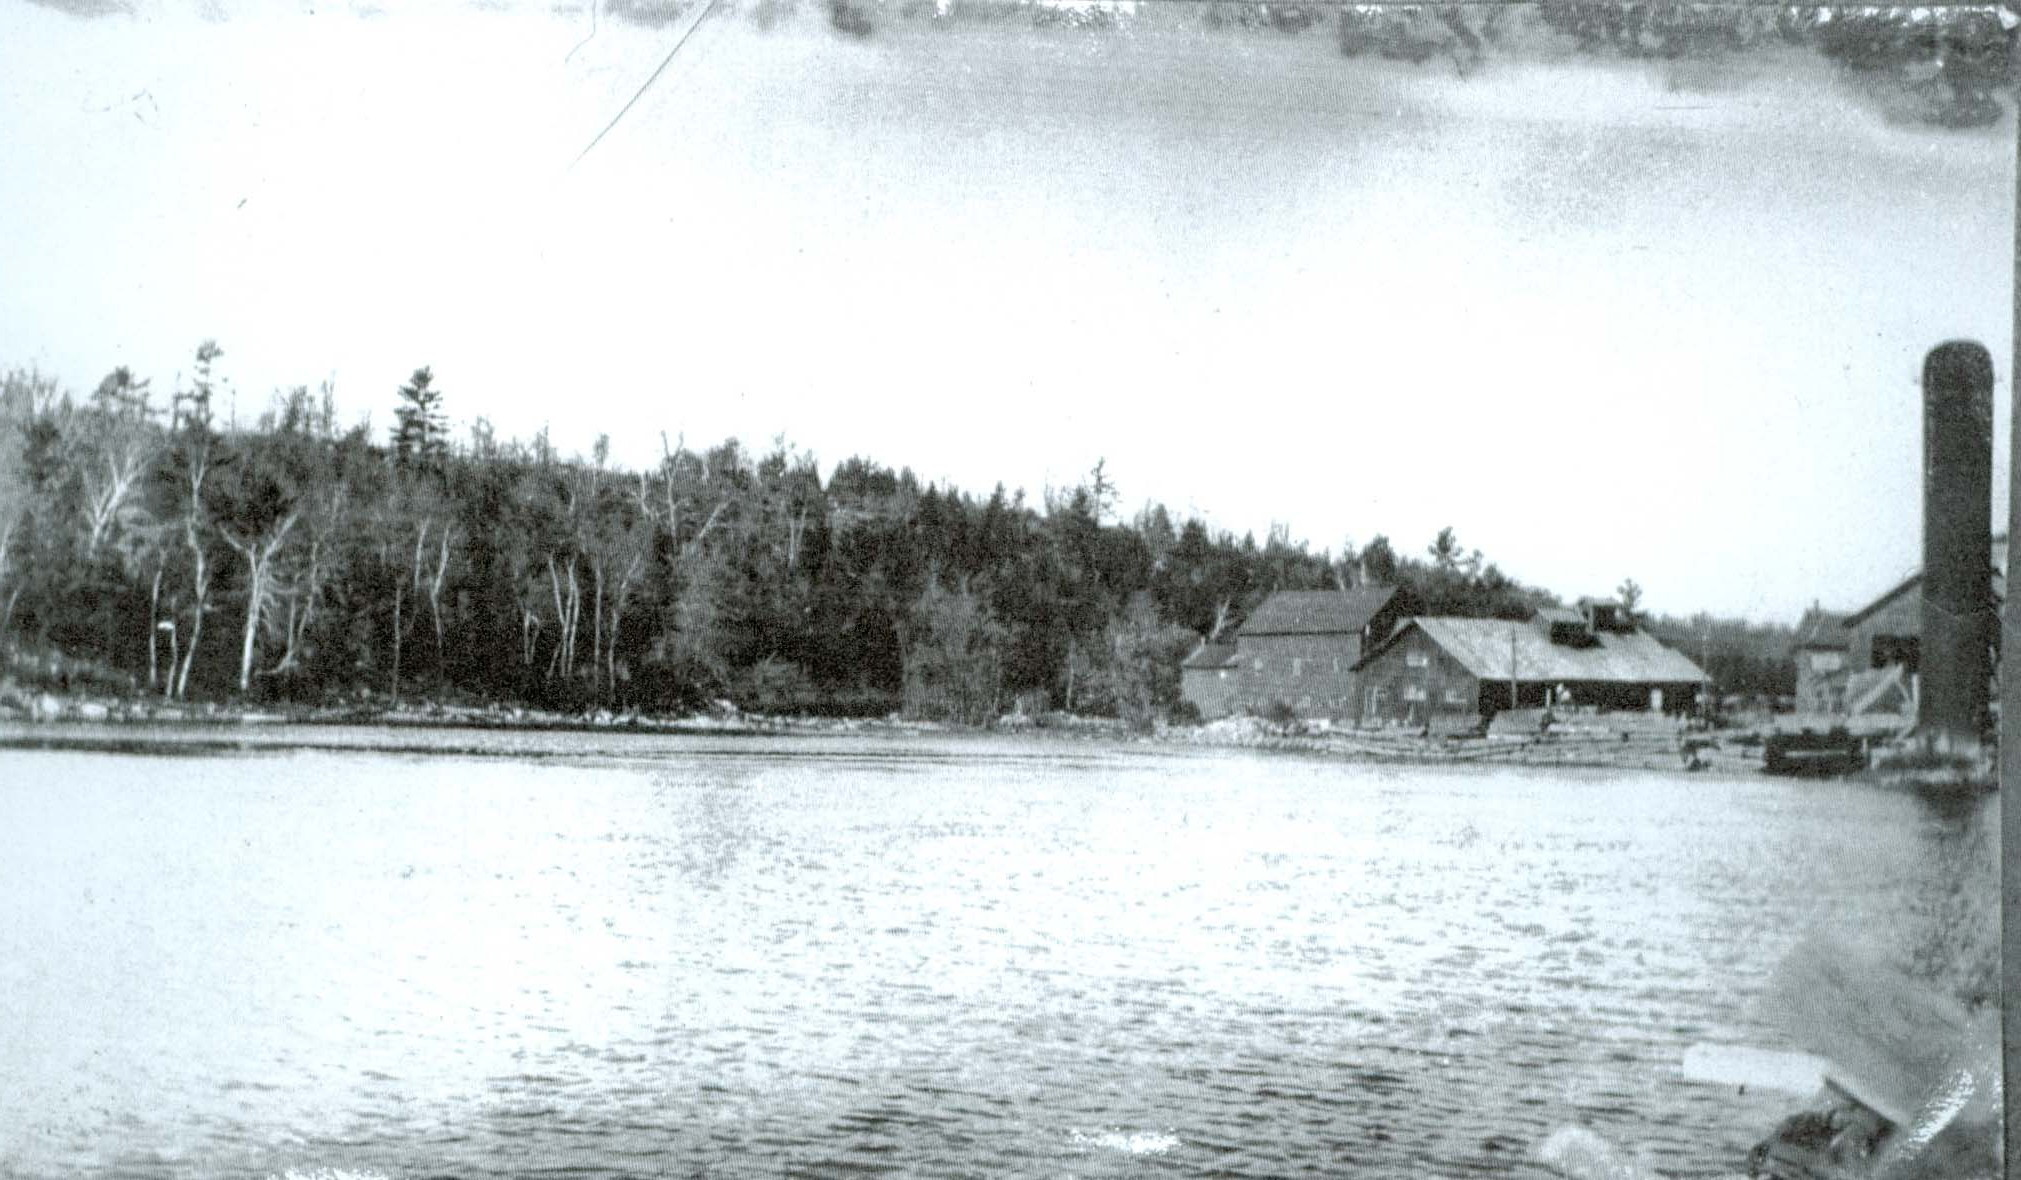 Photo of Pearce Mills constructed on what is now the dam location. Visible is the west shore of Crowe River.